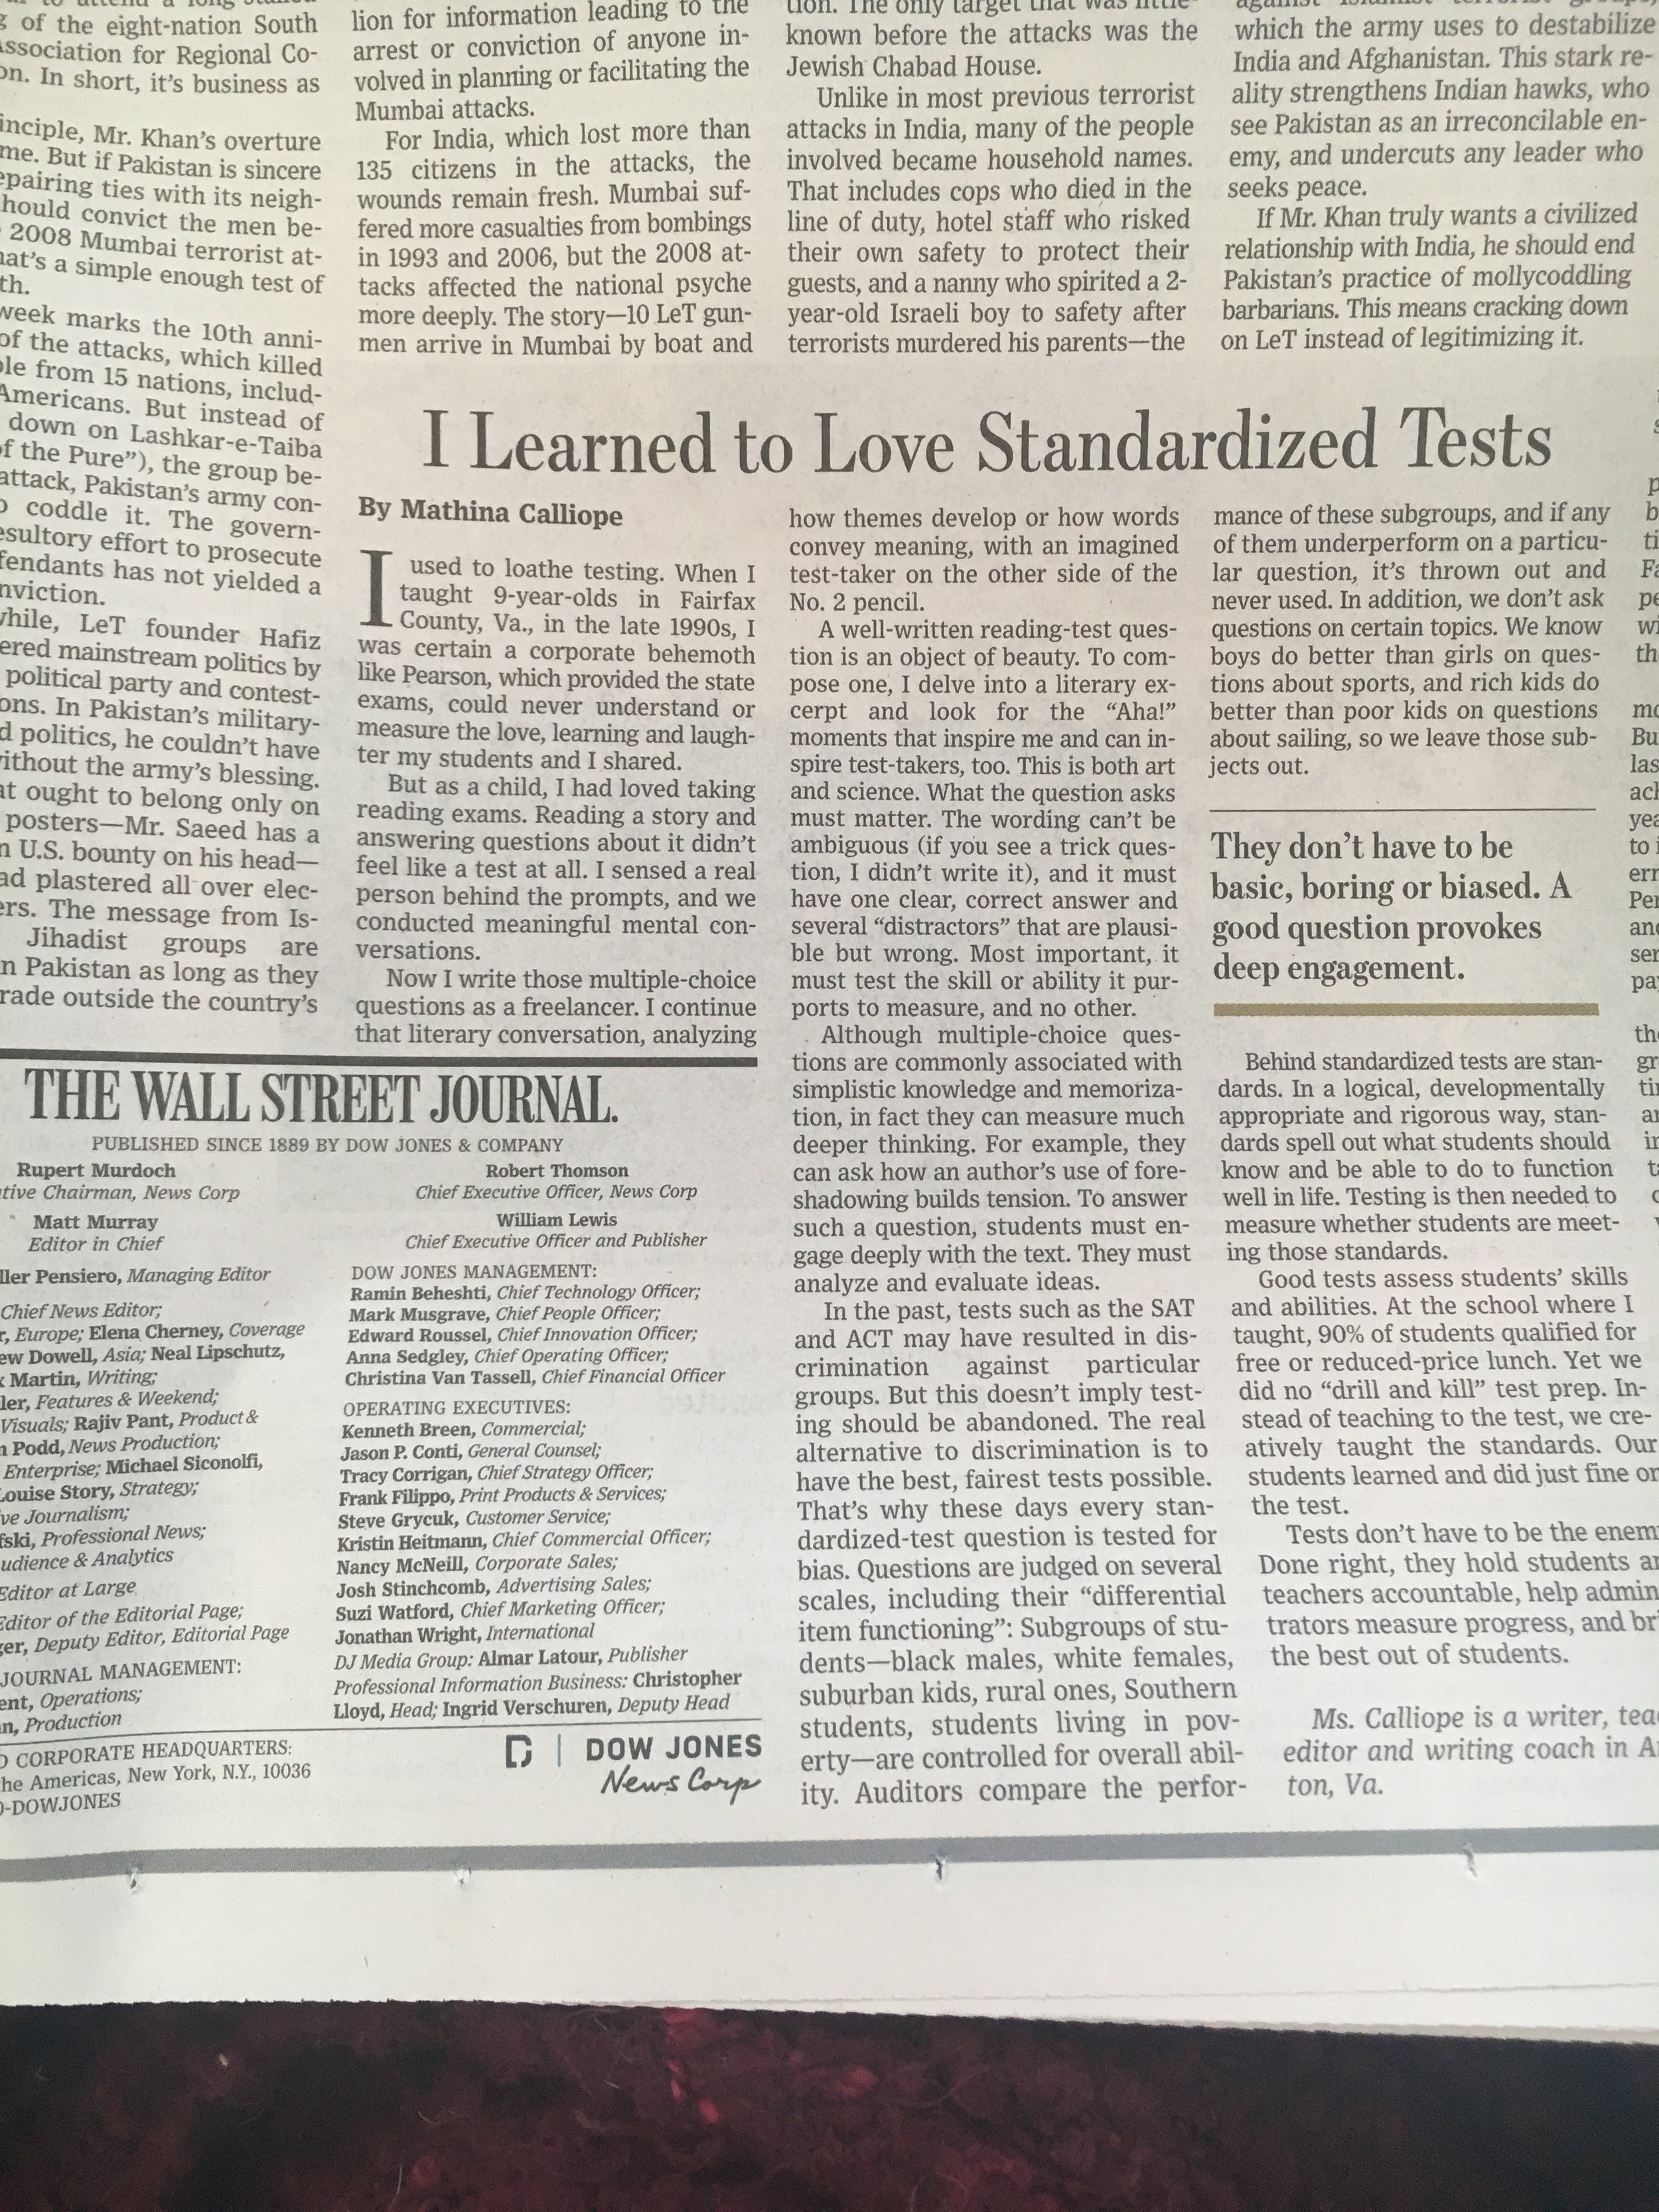 """"""" I Learned to Love Standardized Tests """" ( Wall Street Journal )  They don't have to be basic, boring, or biased. A good question provokes deep engagement."""